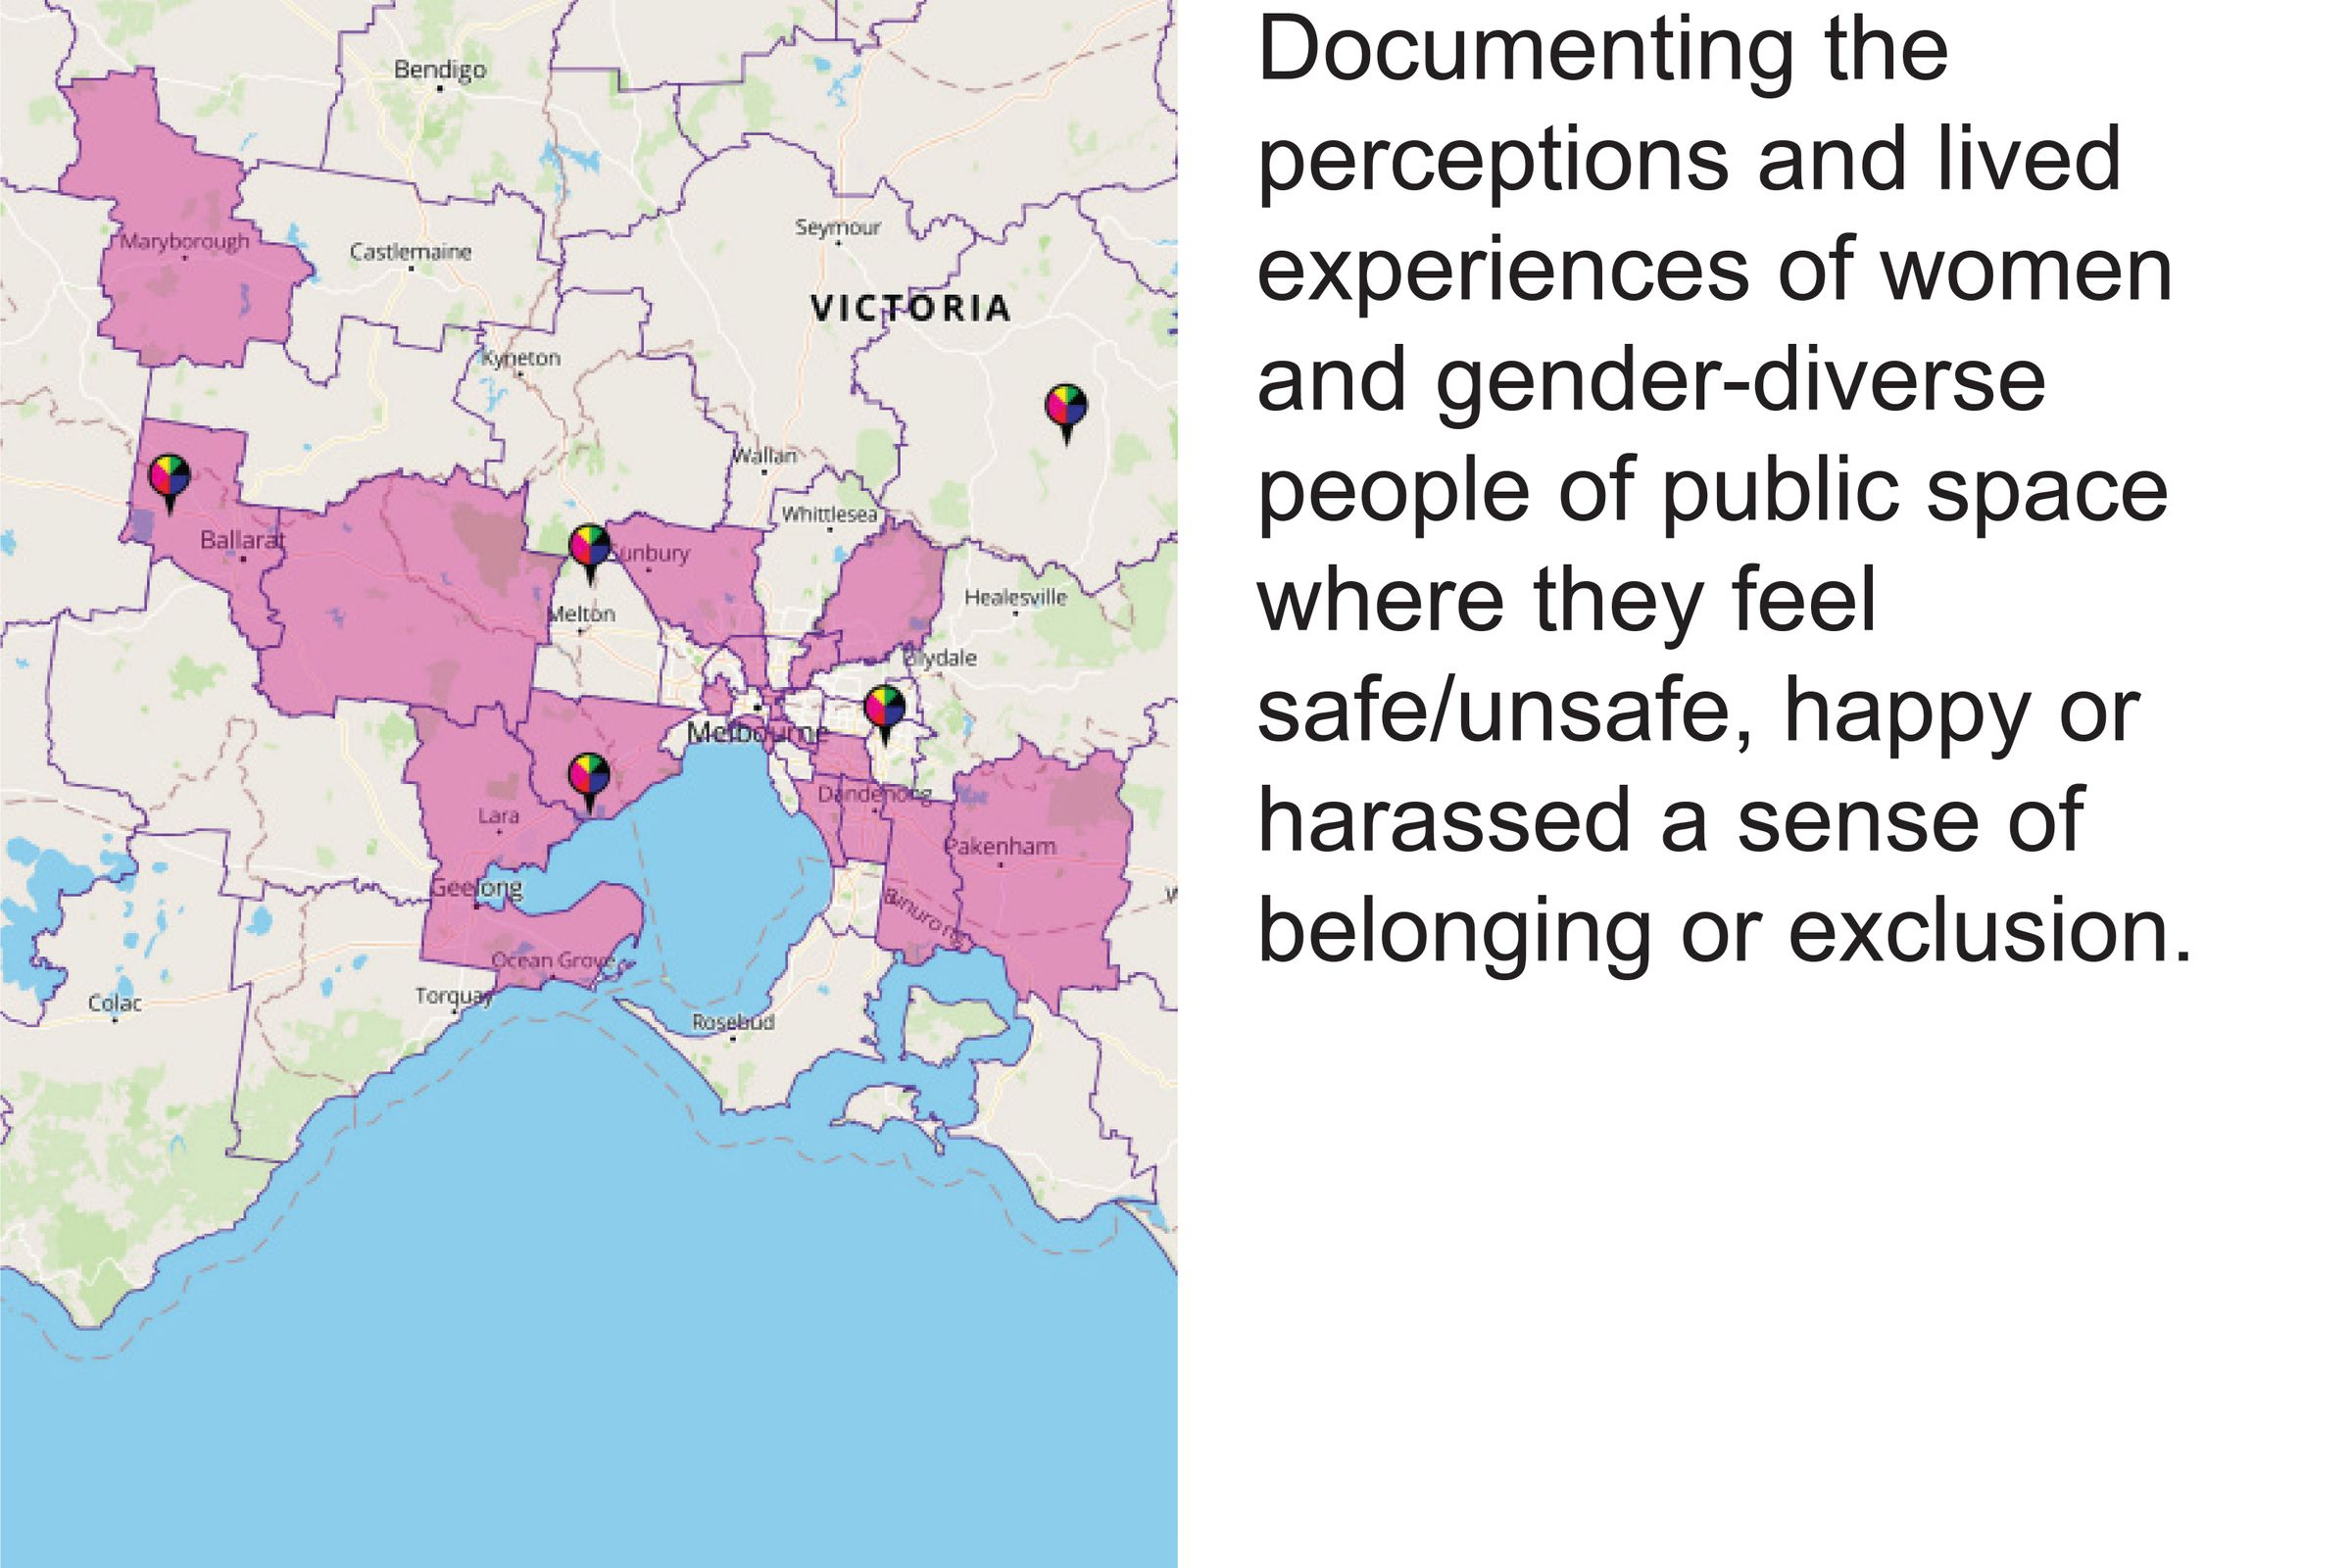 Digital mapping platforms - documenting the perceptions and lived experiences of women and gender-diverse people of public space where they feel safe/unsafe, happy or harassed a sense of belonging or exclusion.